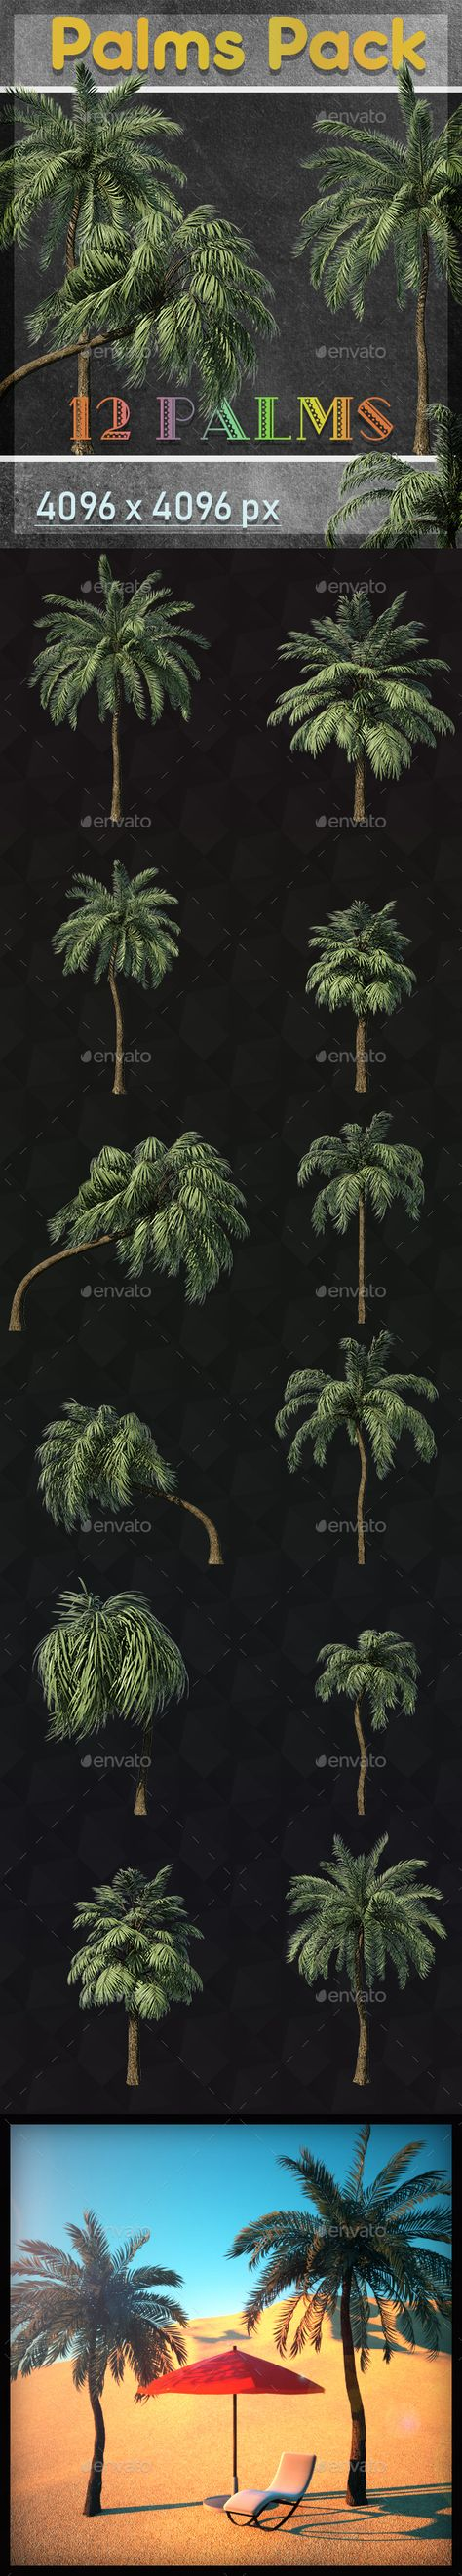 3D Graphics & Renders - Palm Trees Pack